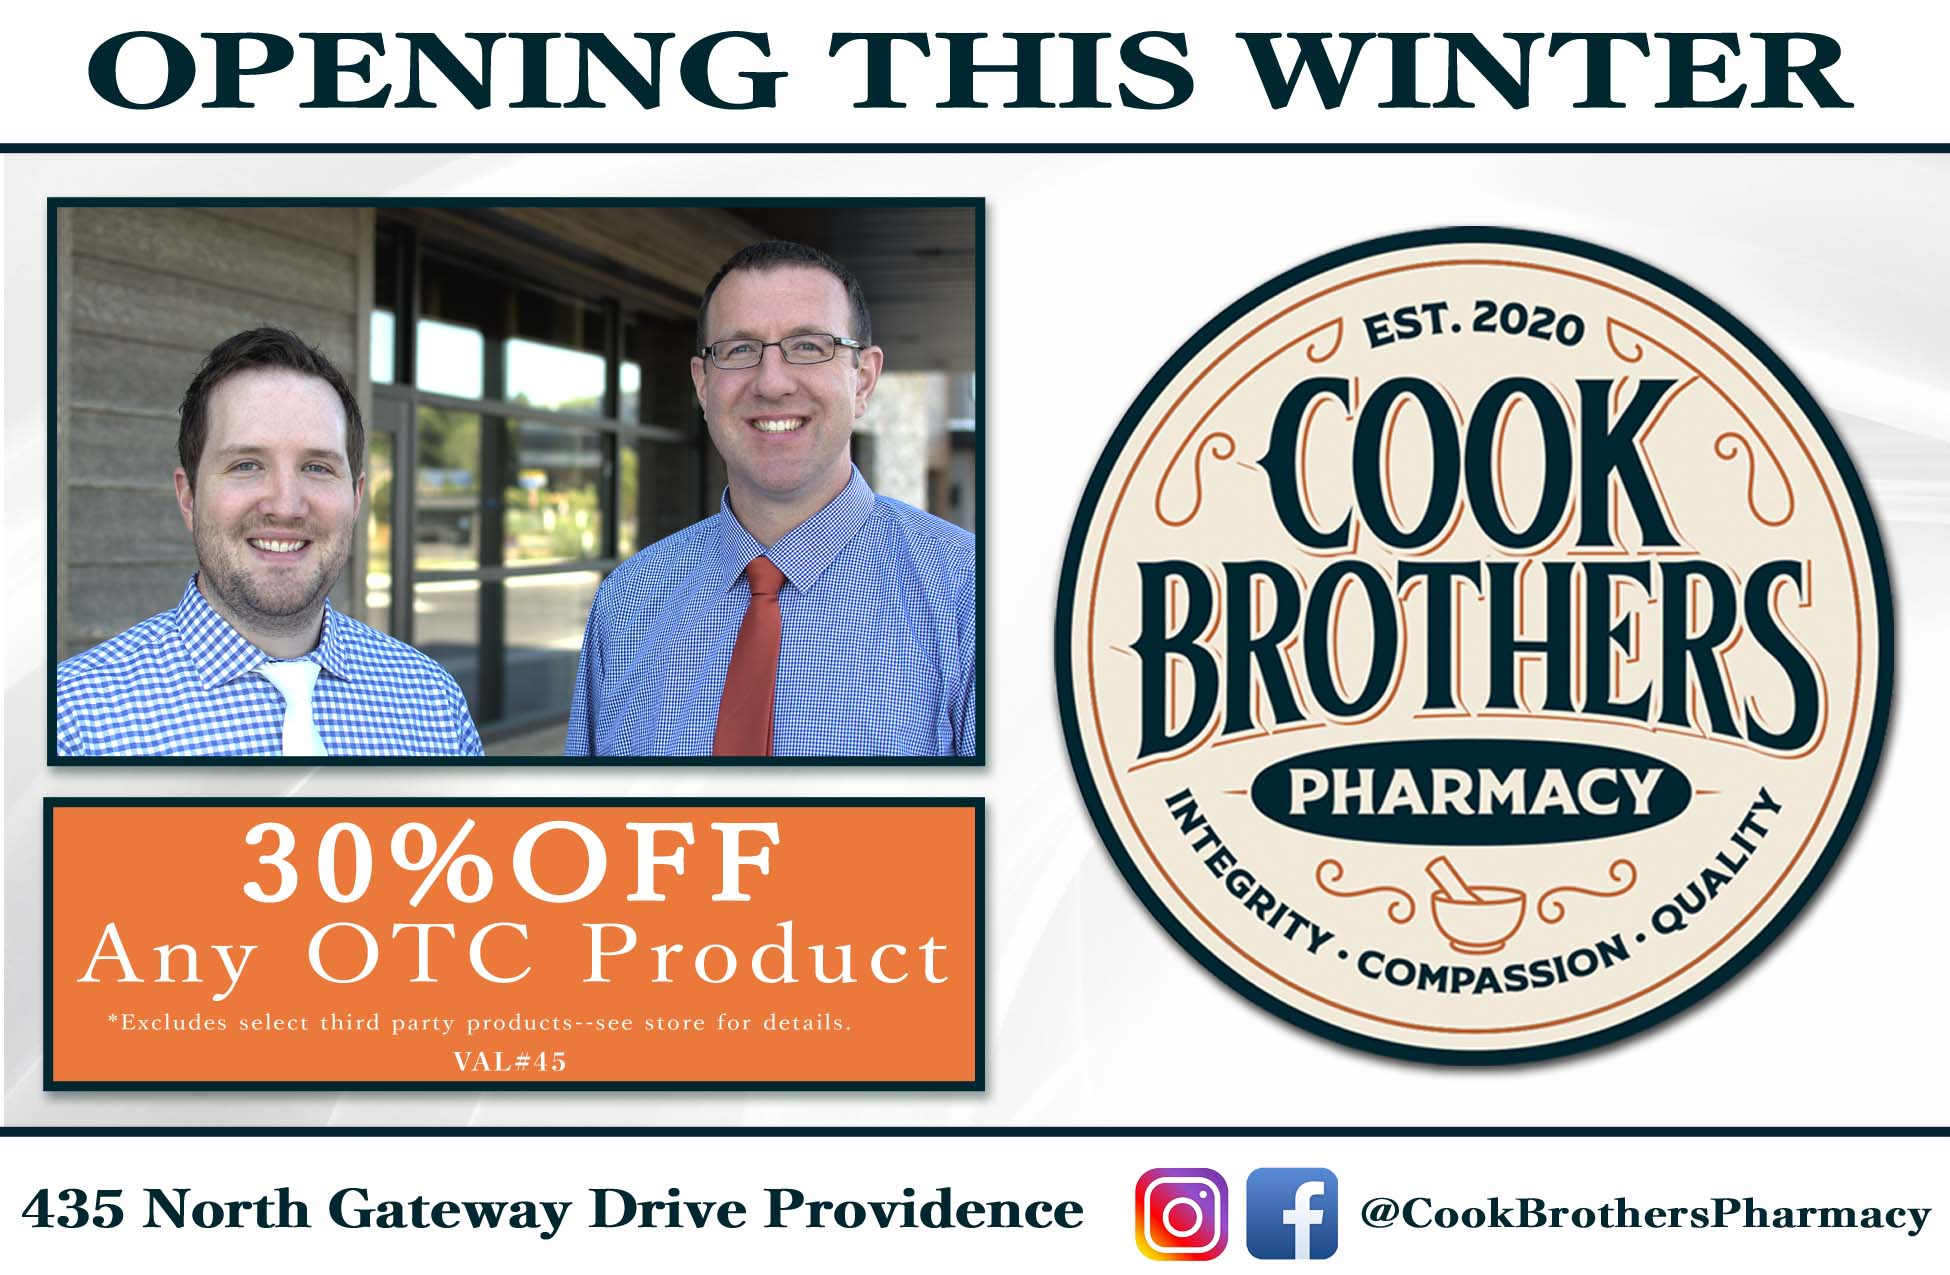 Cook Brothers Pharmacy